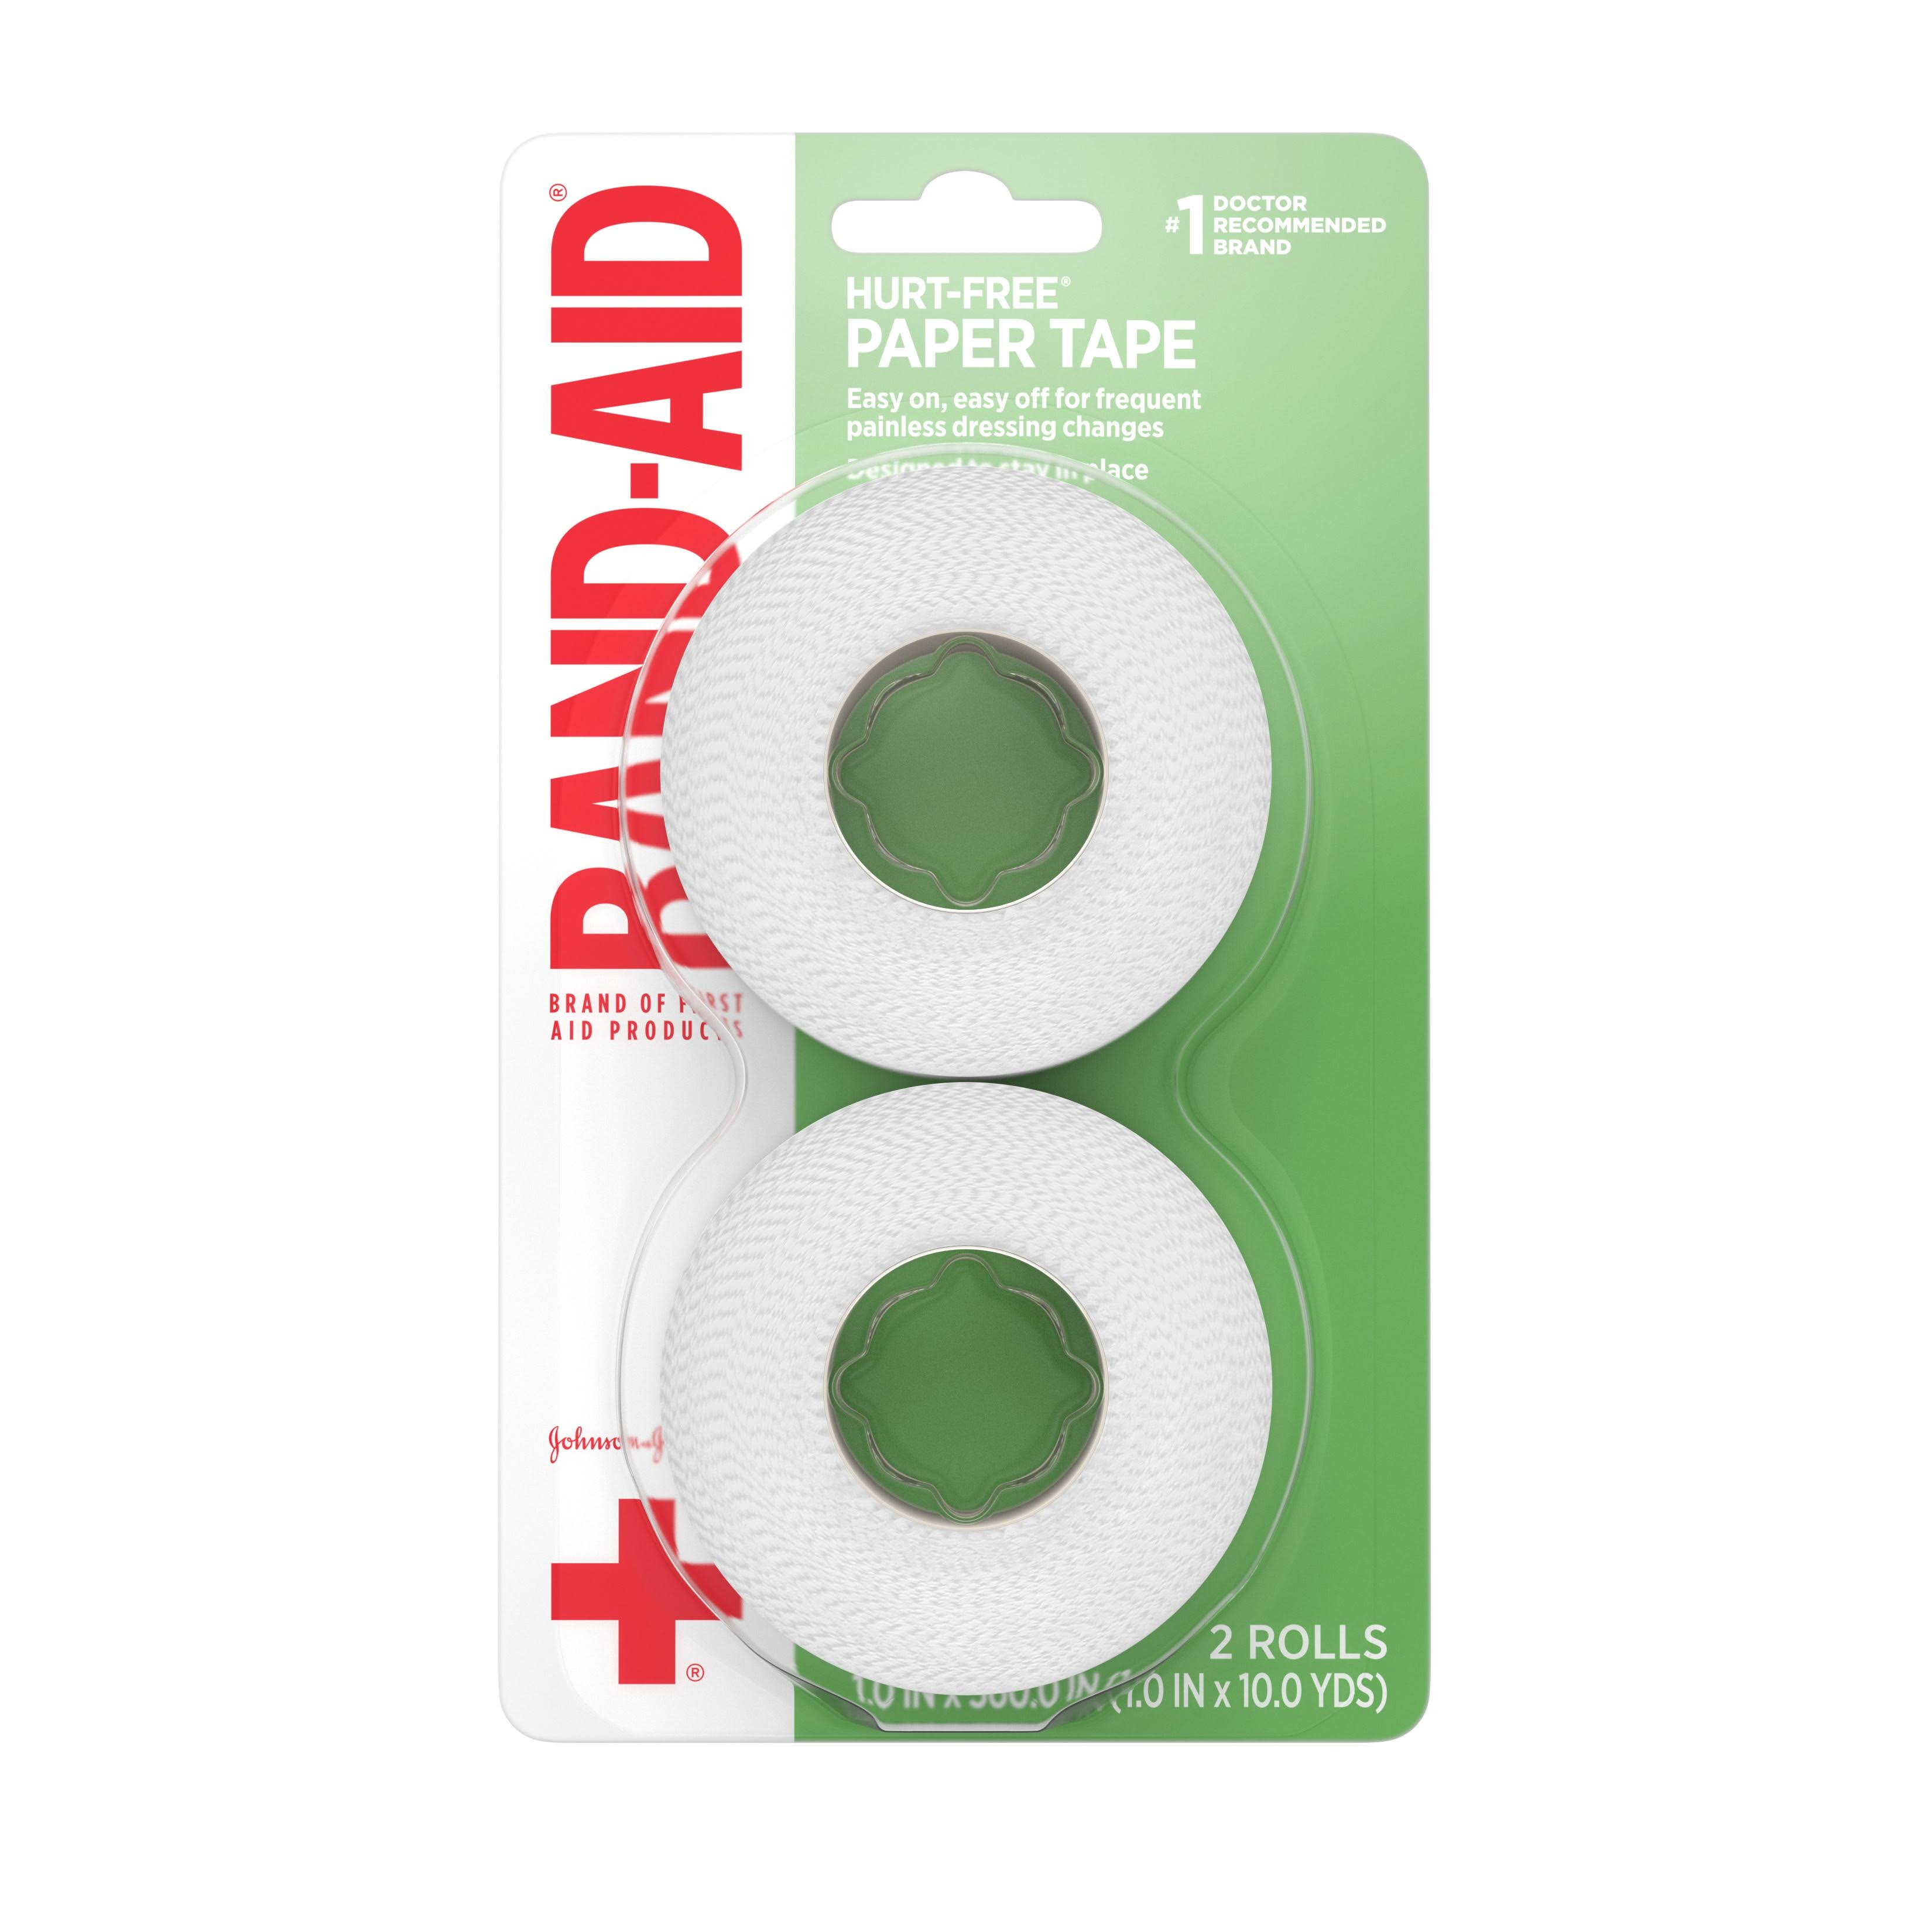 Band-Aid Brand Hurt-Free Paper Tape